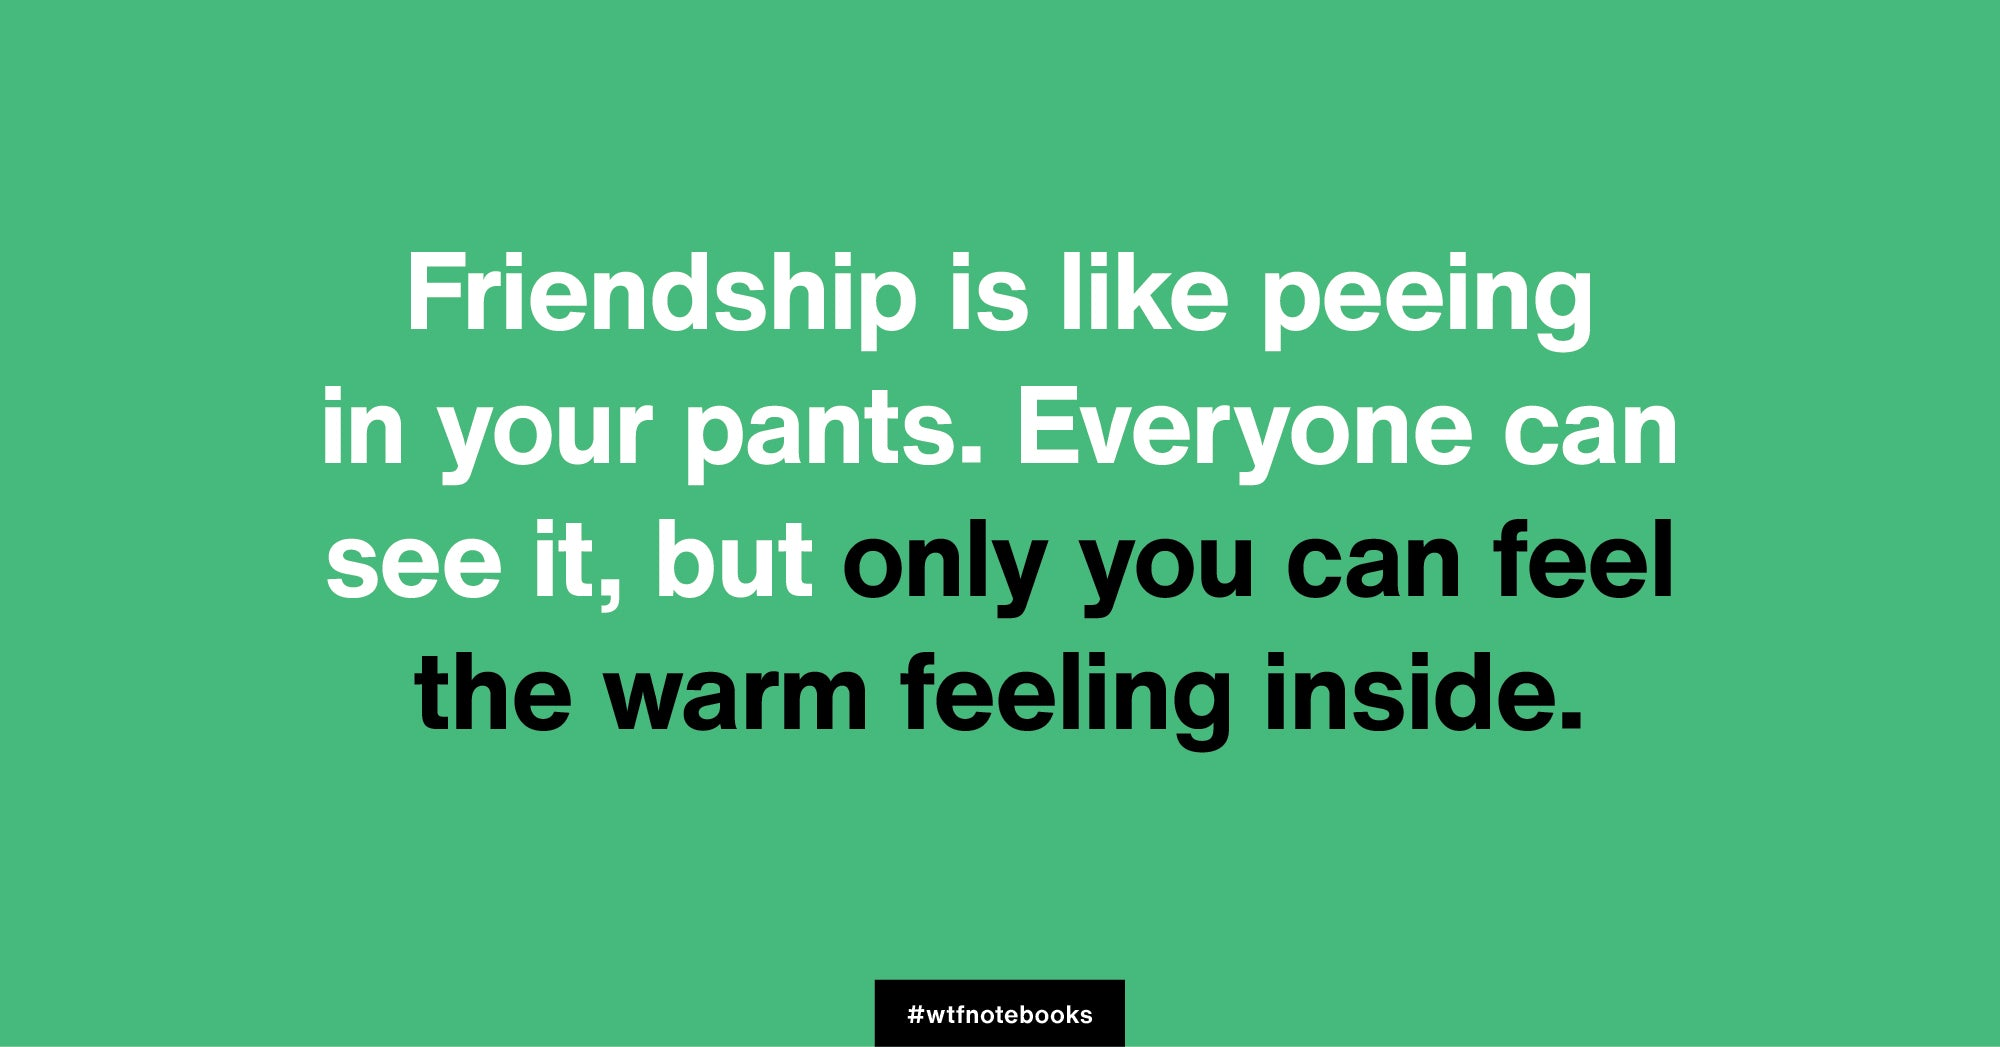 WTF Notebooks funny friendship title: Pee